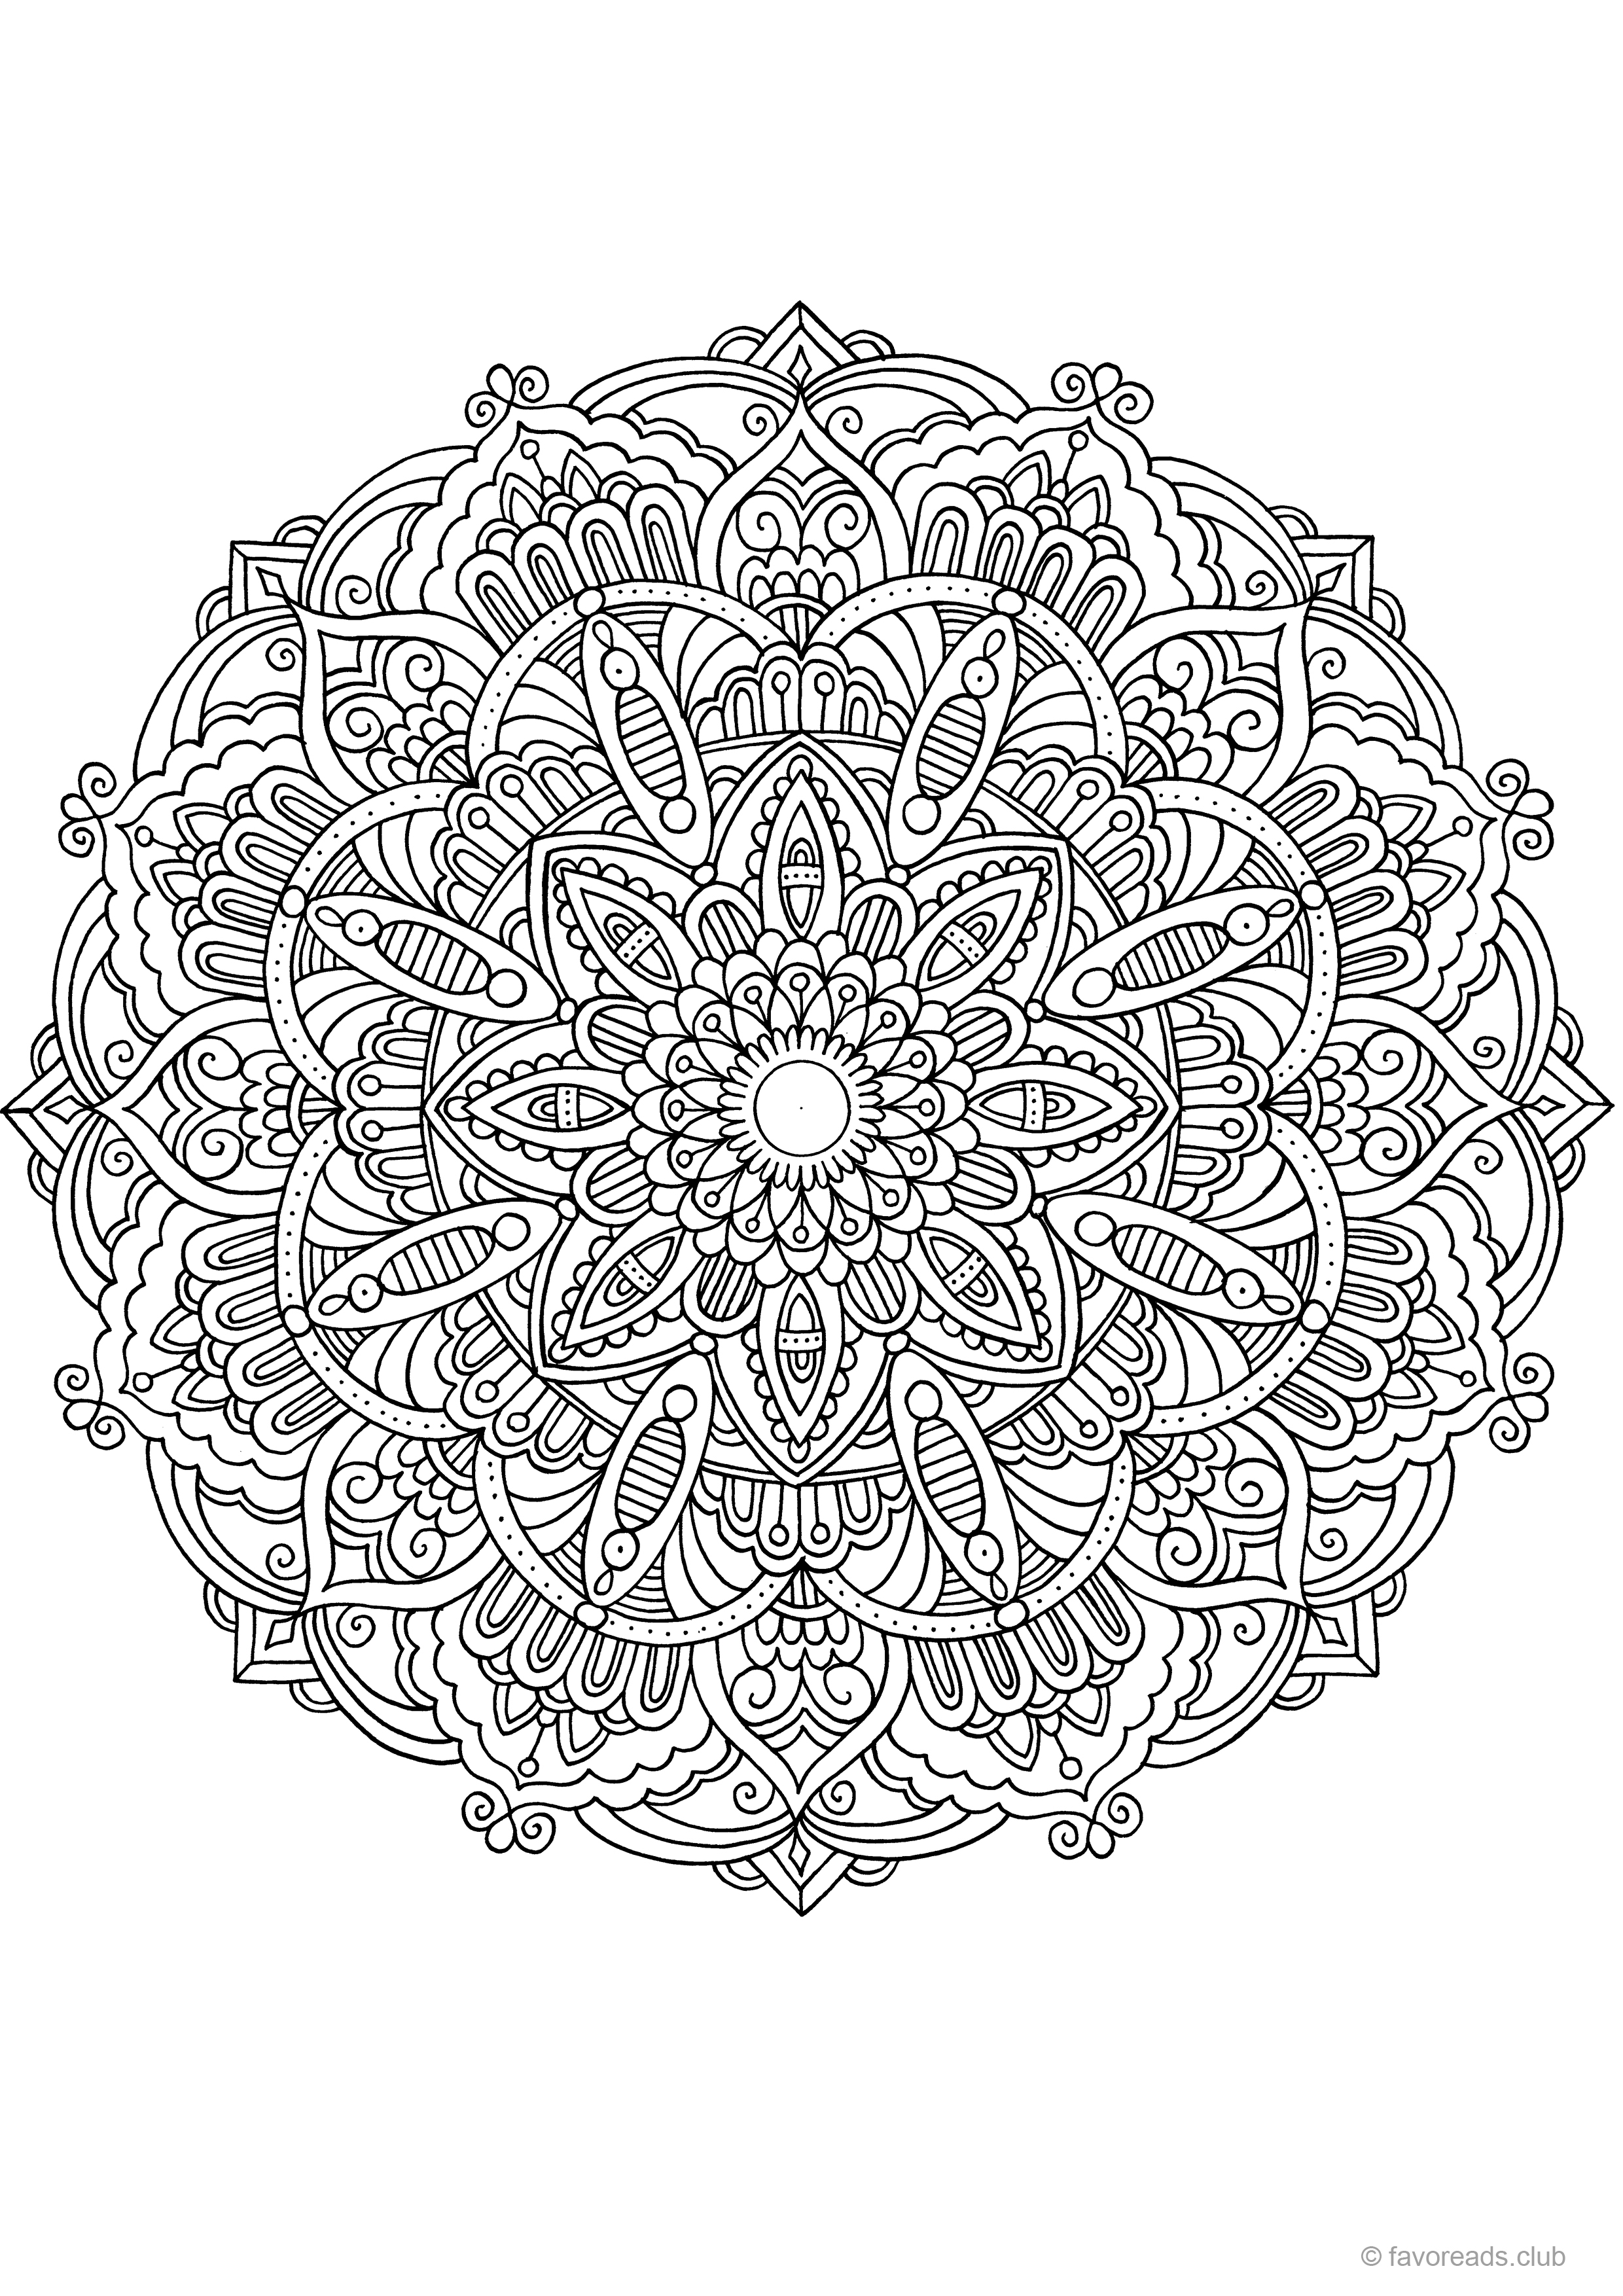 color your own mandala color your own palm tree mandala coloring poster zazzlecom your mandala color own